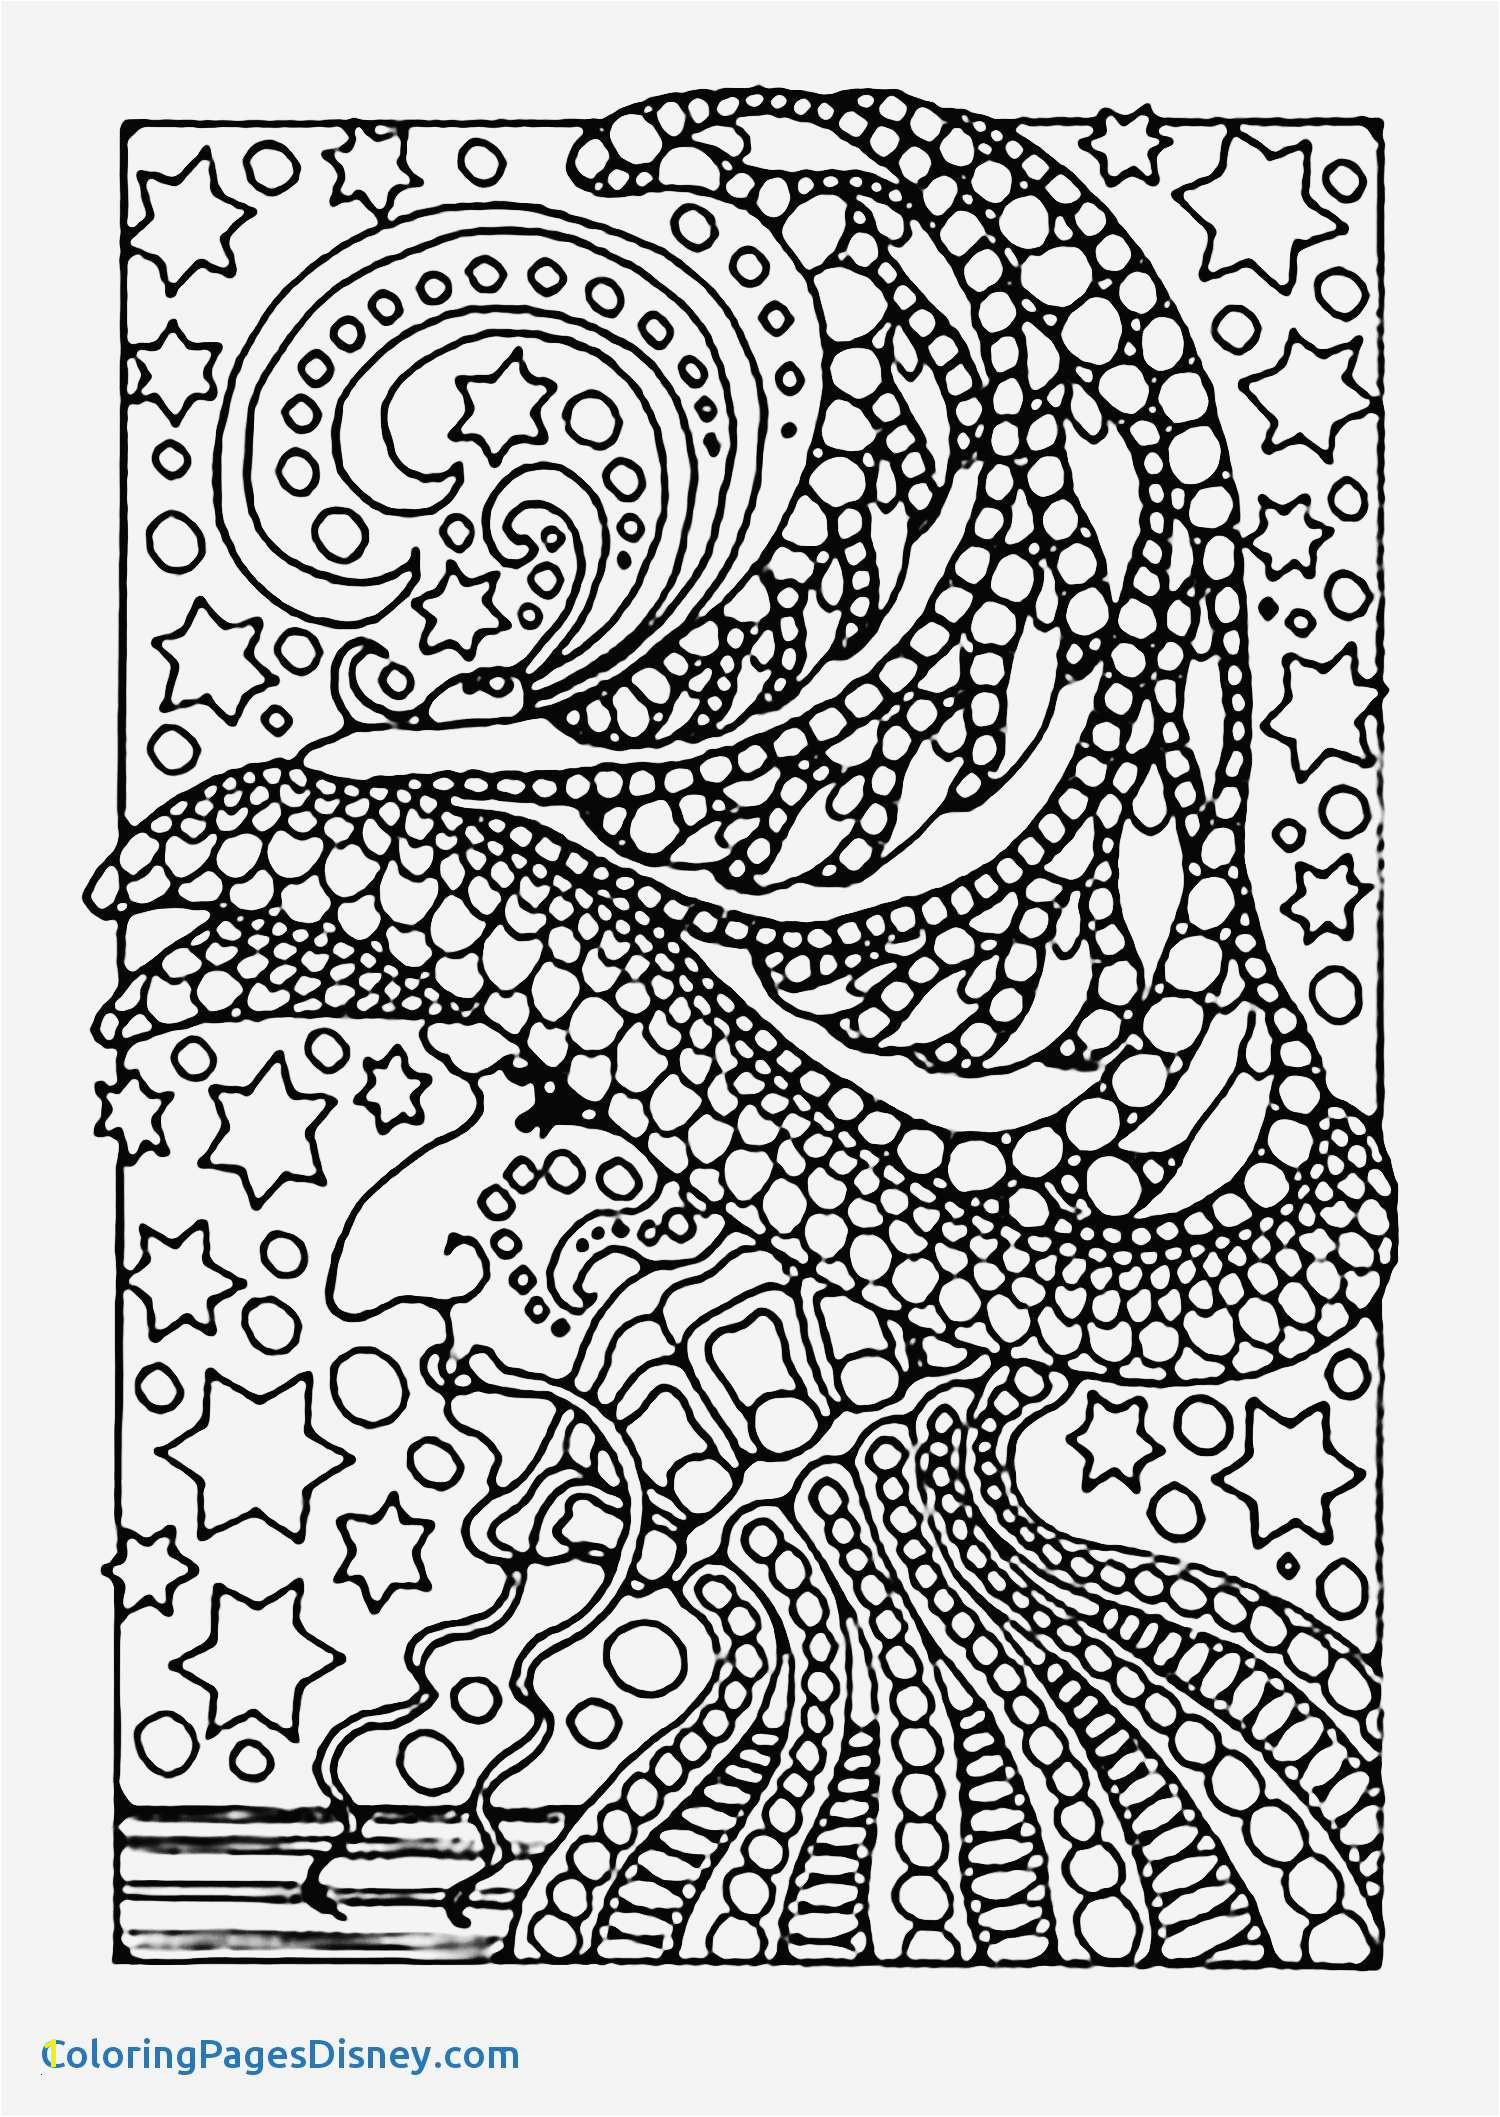 Animal Mandala Coloring Pages Free Design Your Own Coloring Book 21v Coloring Book New Colouring